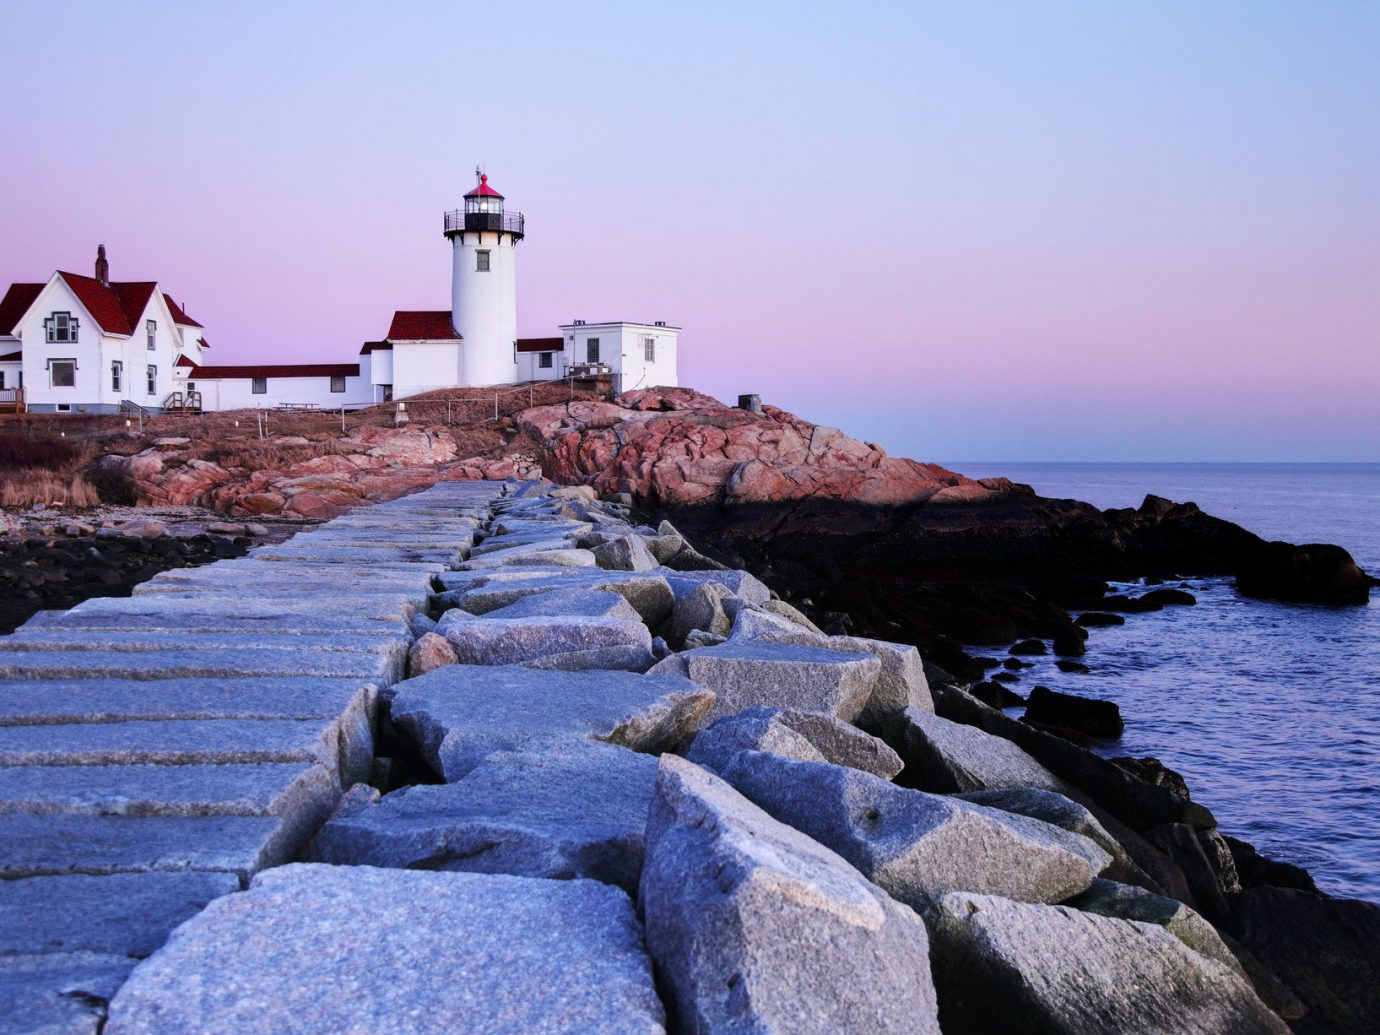 Trip Ideas outdoor sky rock water lighthouse Sea tower Coast rocky shore Ocean house Nature cape Beach cove stone